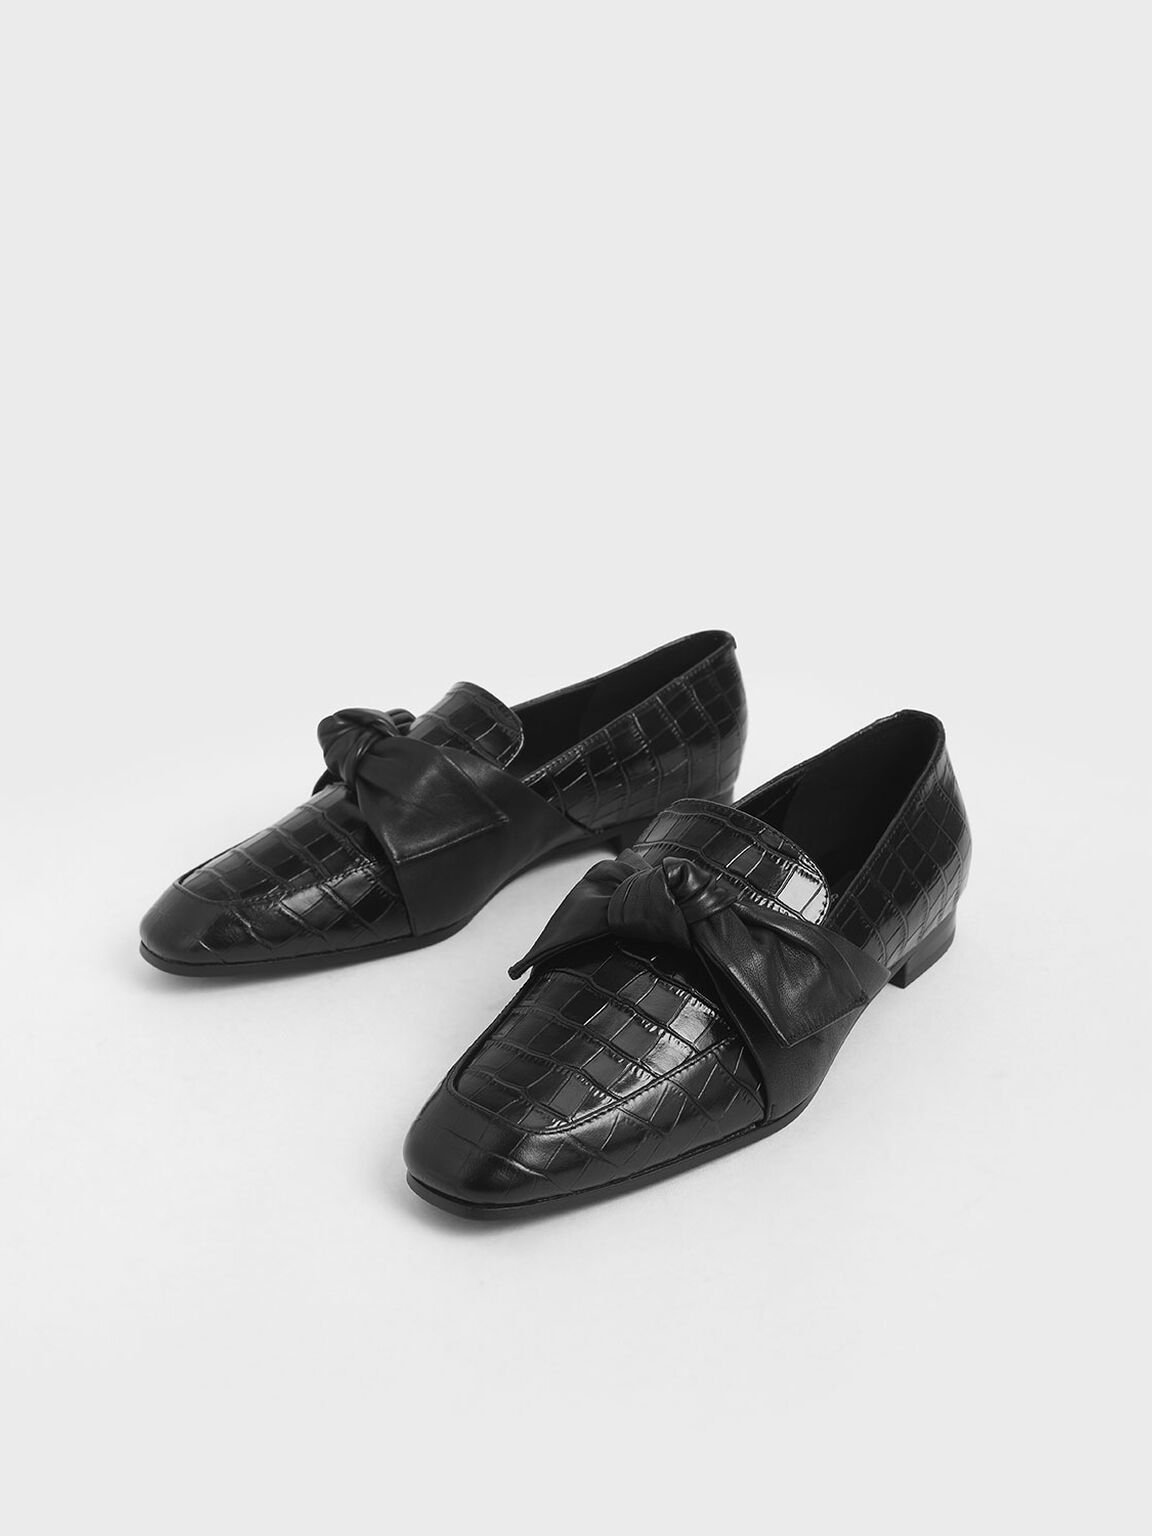 Croc-Effect Leather Bow-Tie Loafers, Black, hi-res